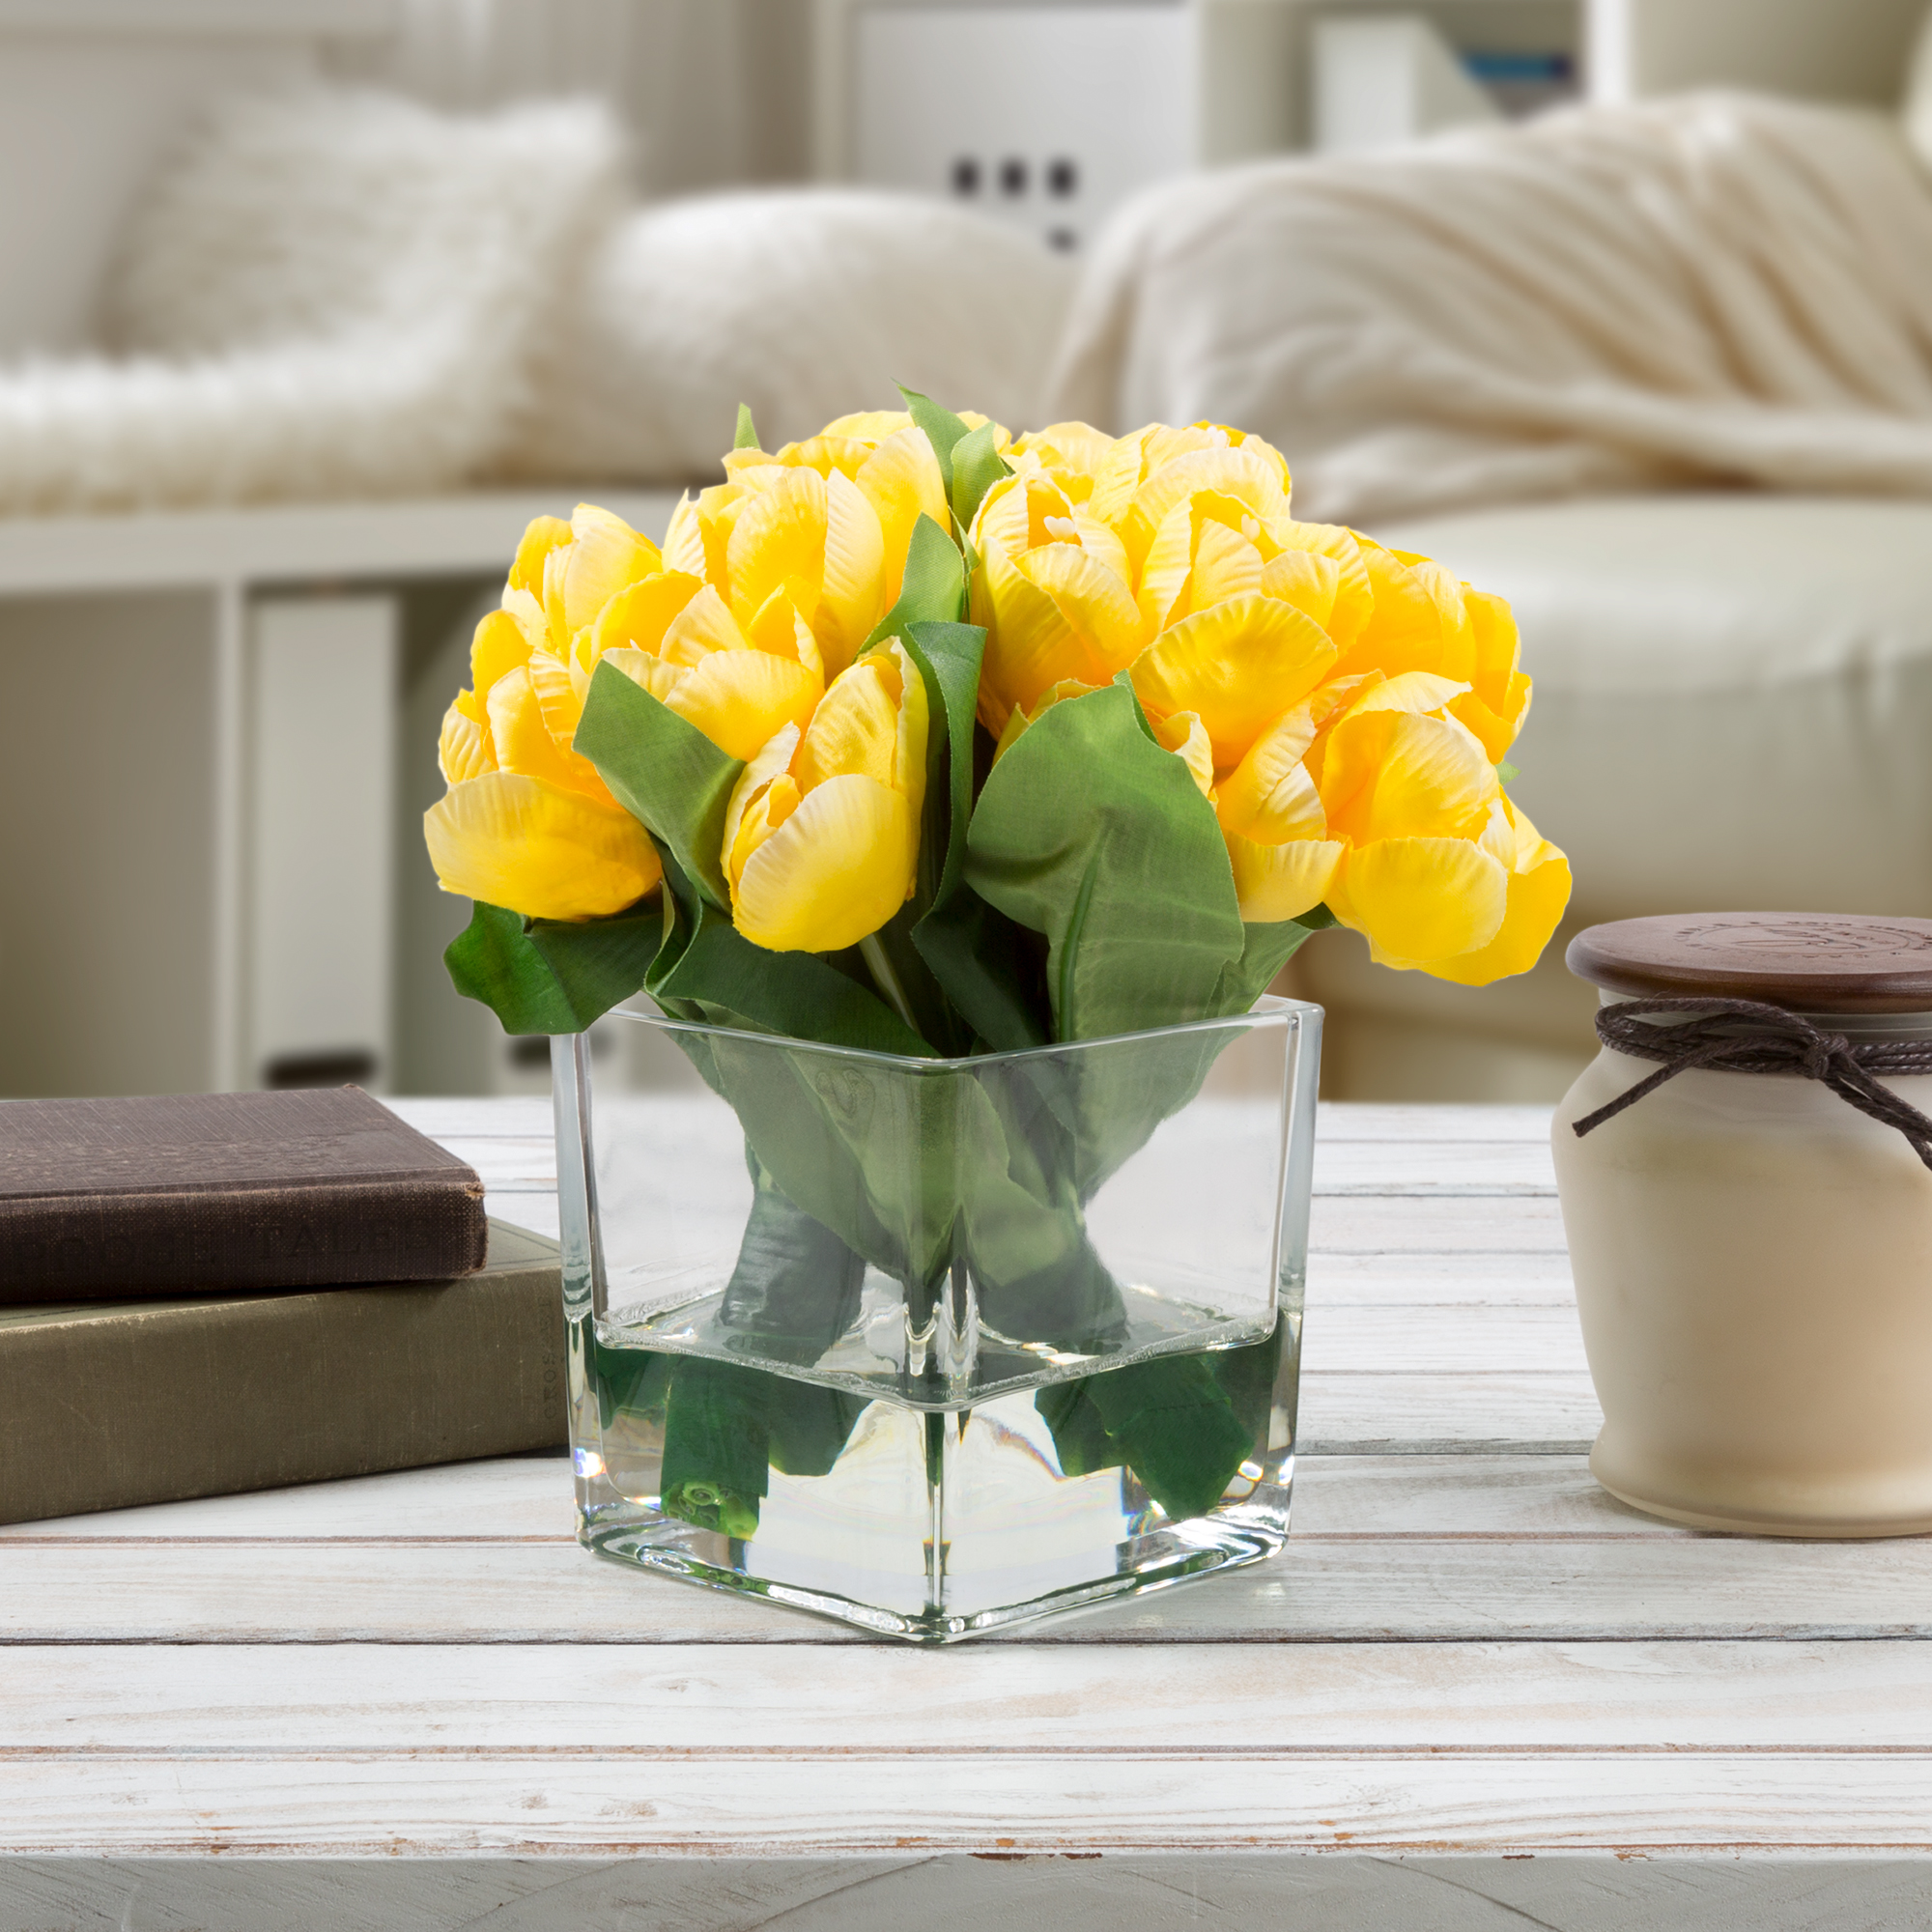 Multicolor Tulip Artificial Floral Arrangement with Vase and Faux Water- Fake Flowers for Home Decor, Weddings, Shower Centerpiece by Pure Garden